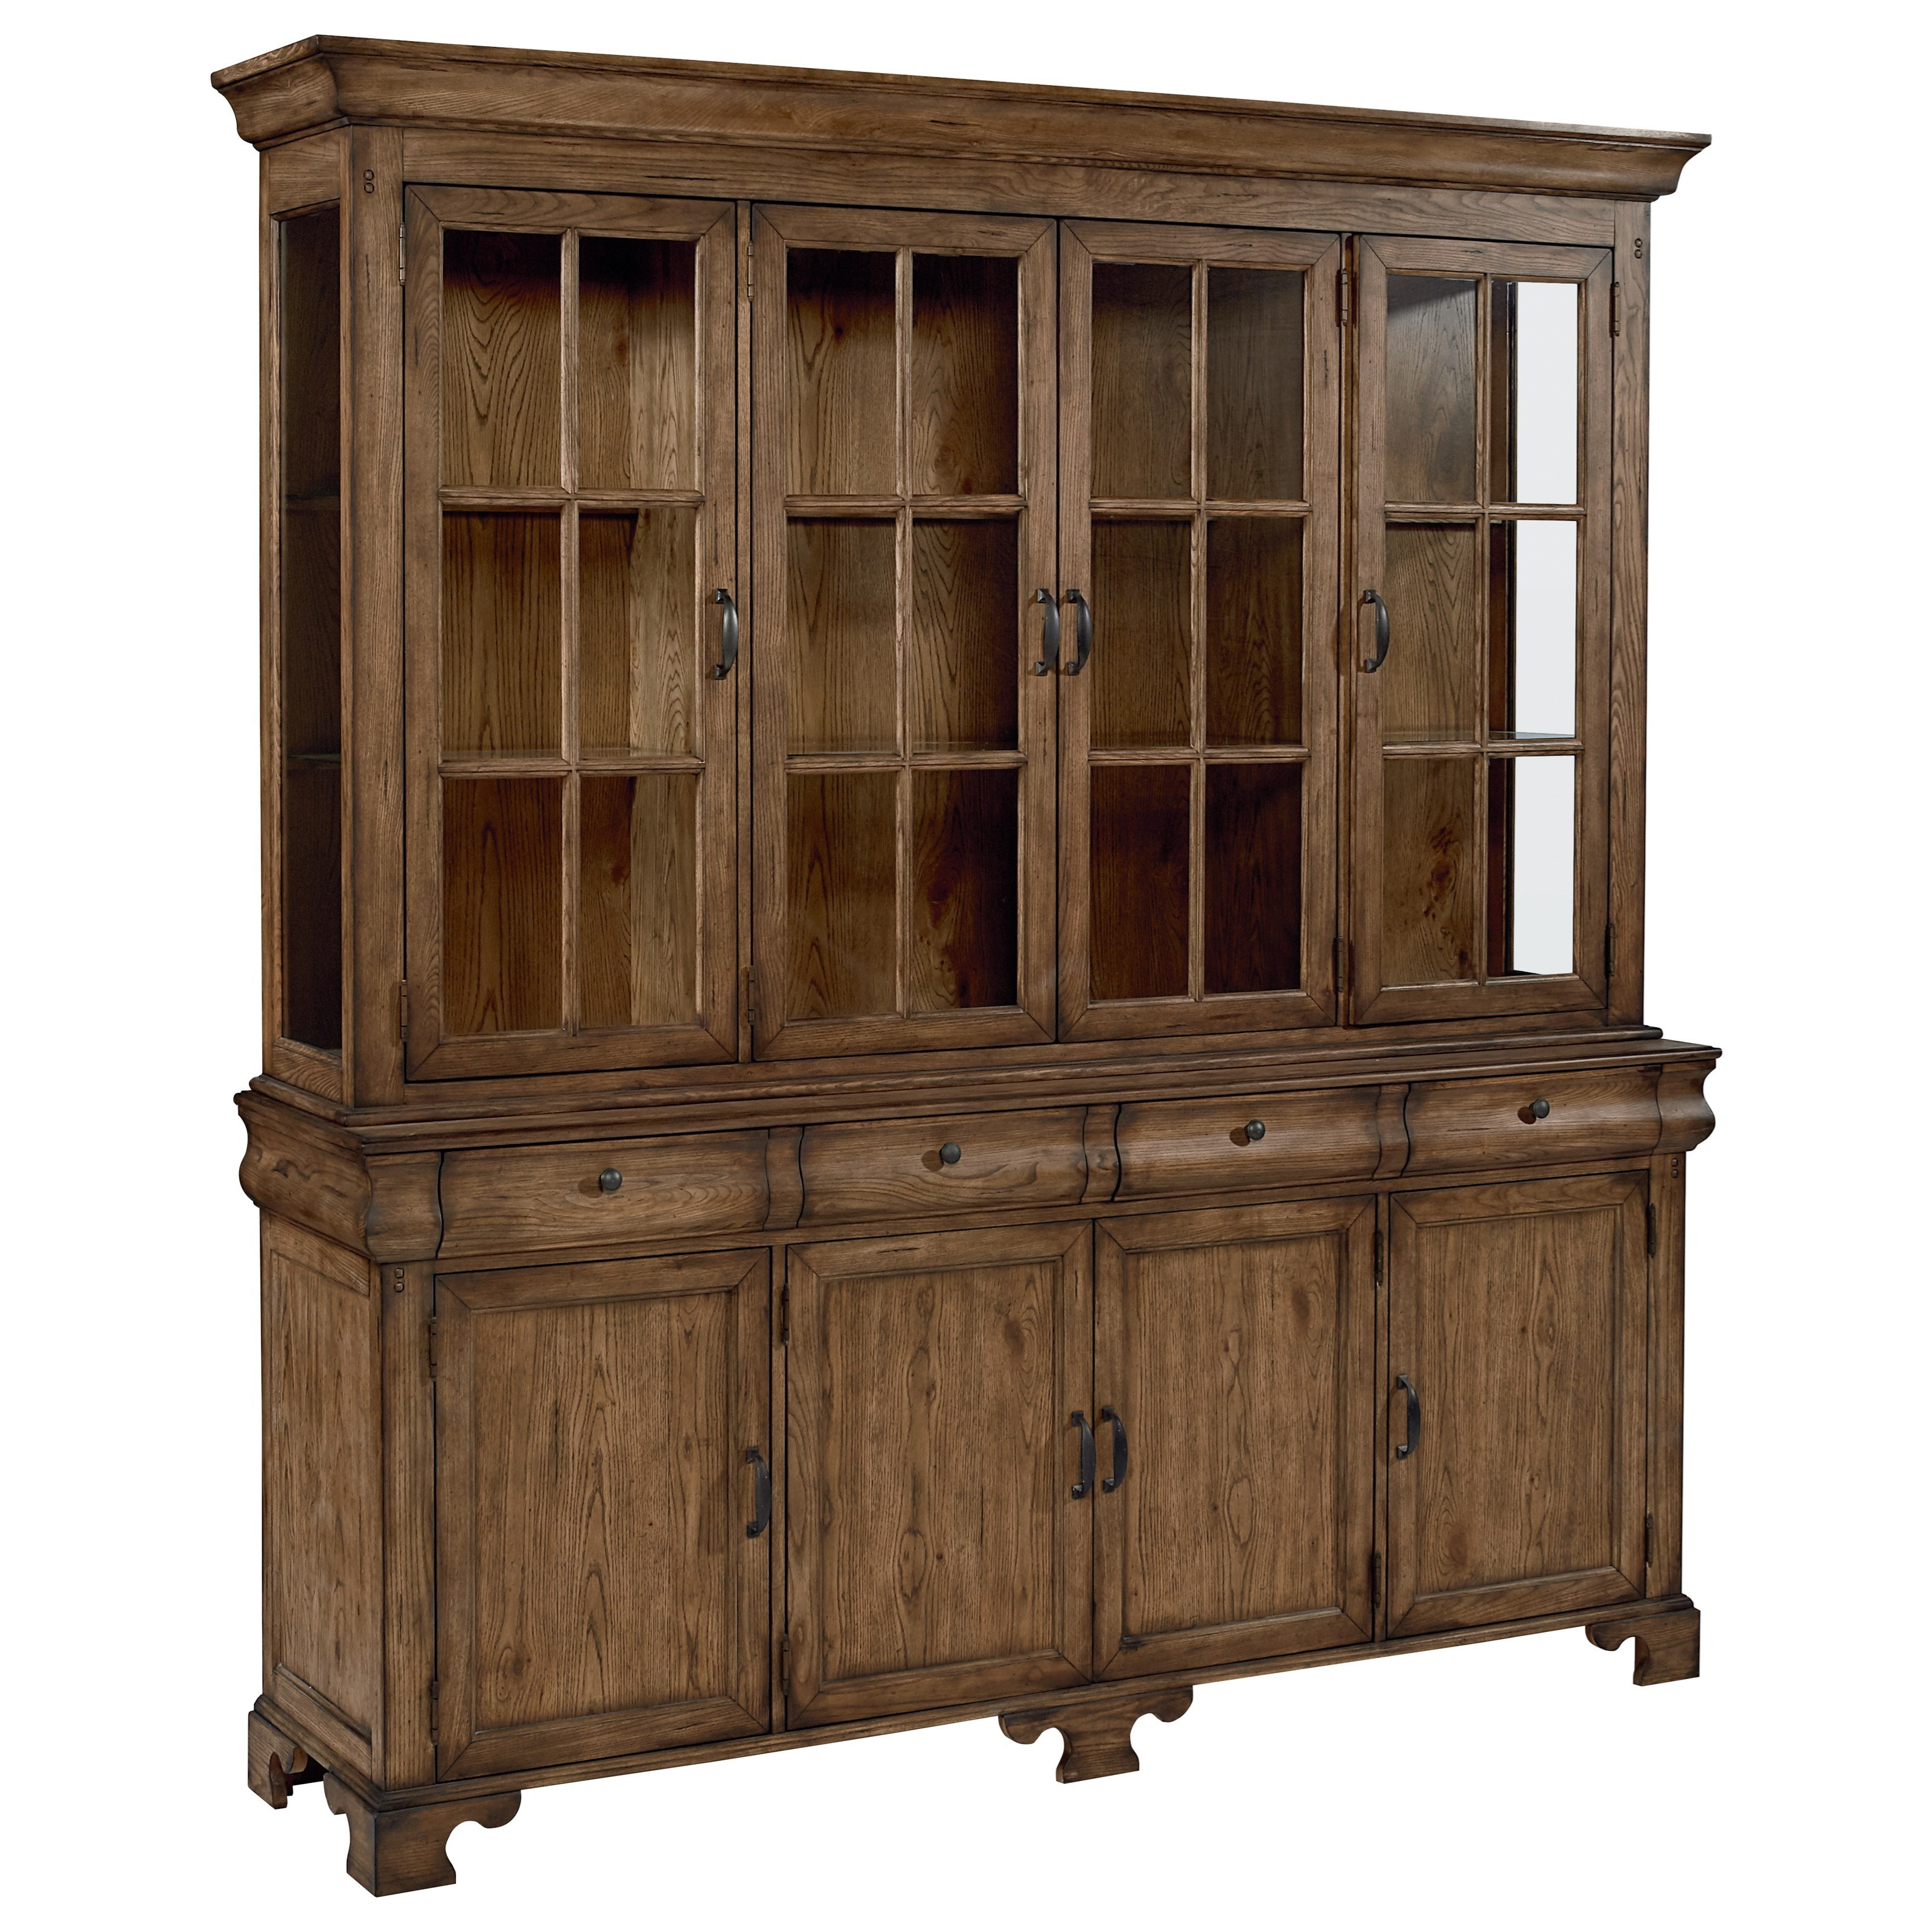 Traditional Buffet with Framed Doors